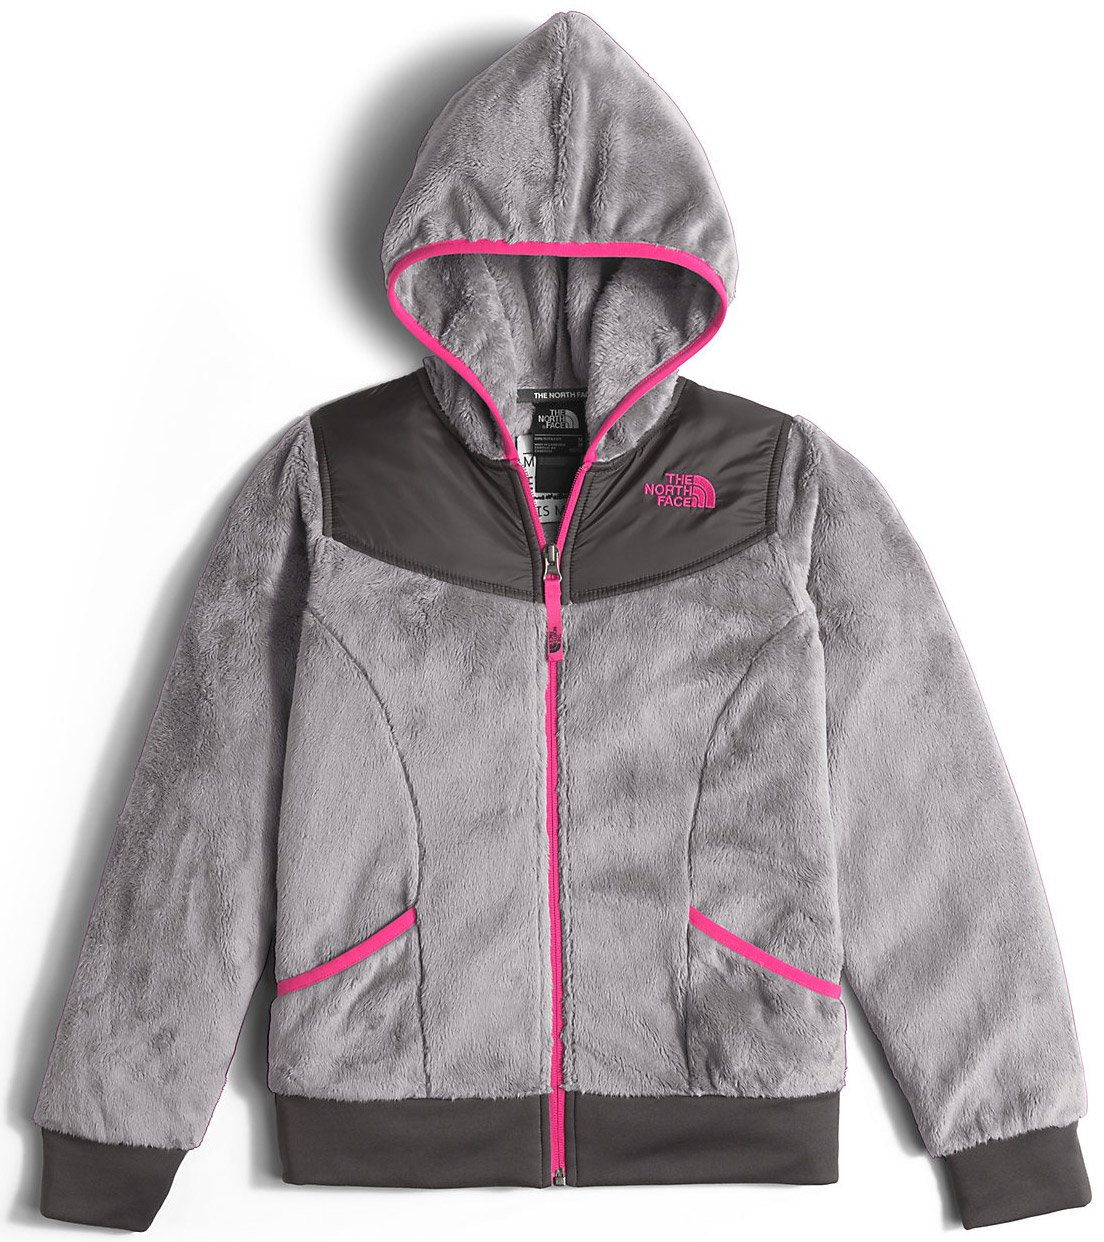 The North Face Girls Girls' Oso Hoodie, Xl (18), Grey